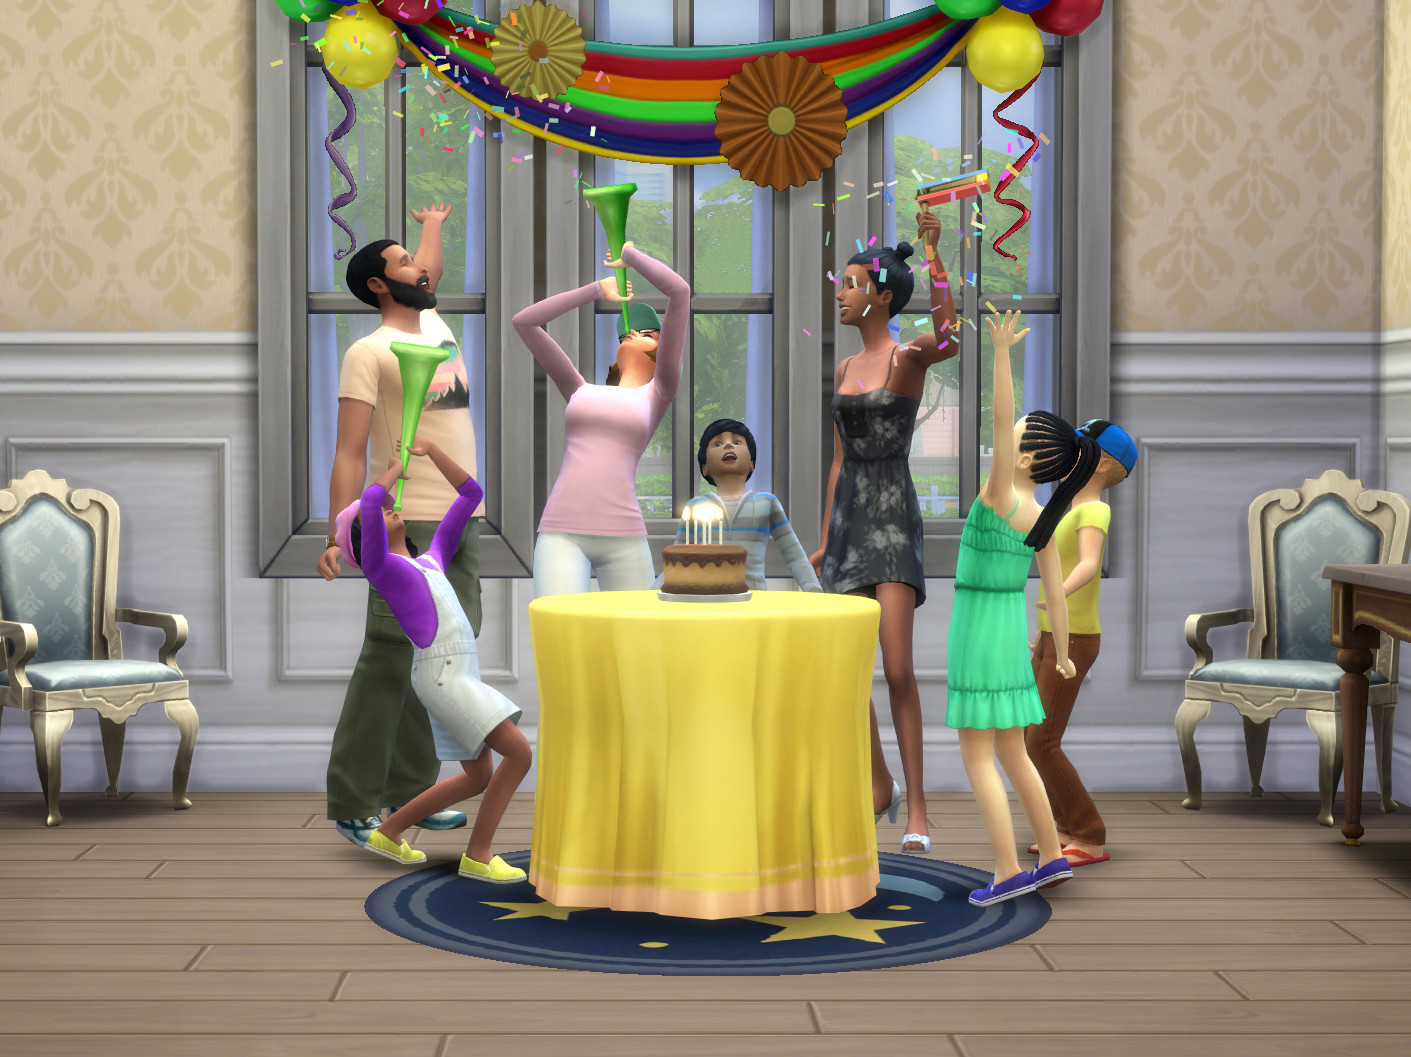 Best ideas about Sims 4 Birthday Party . Save or Pin Social Events Throwing a Party in The Sims 4 Now.